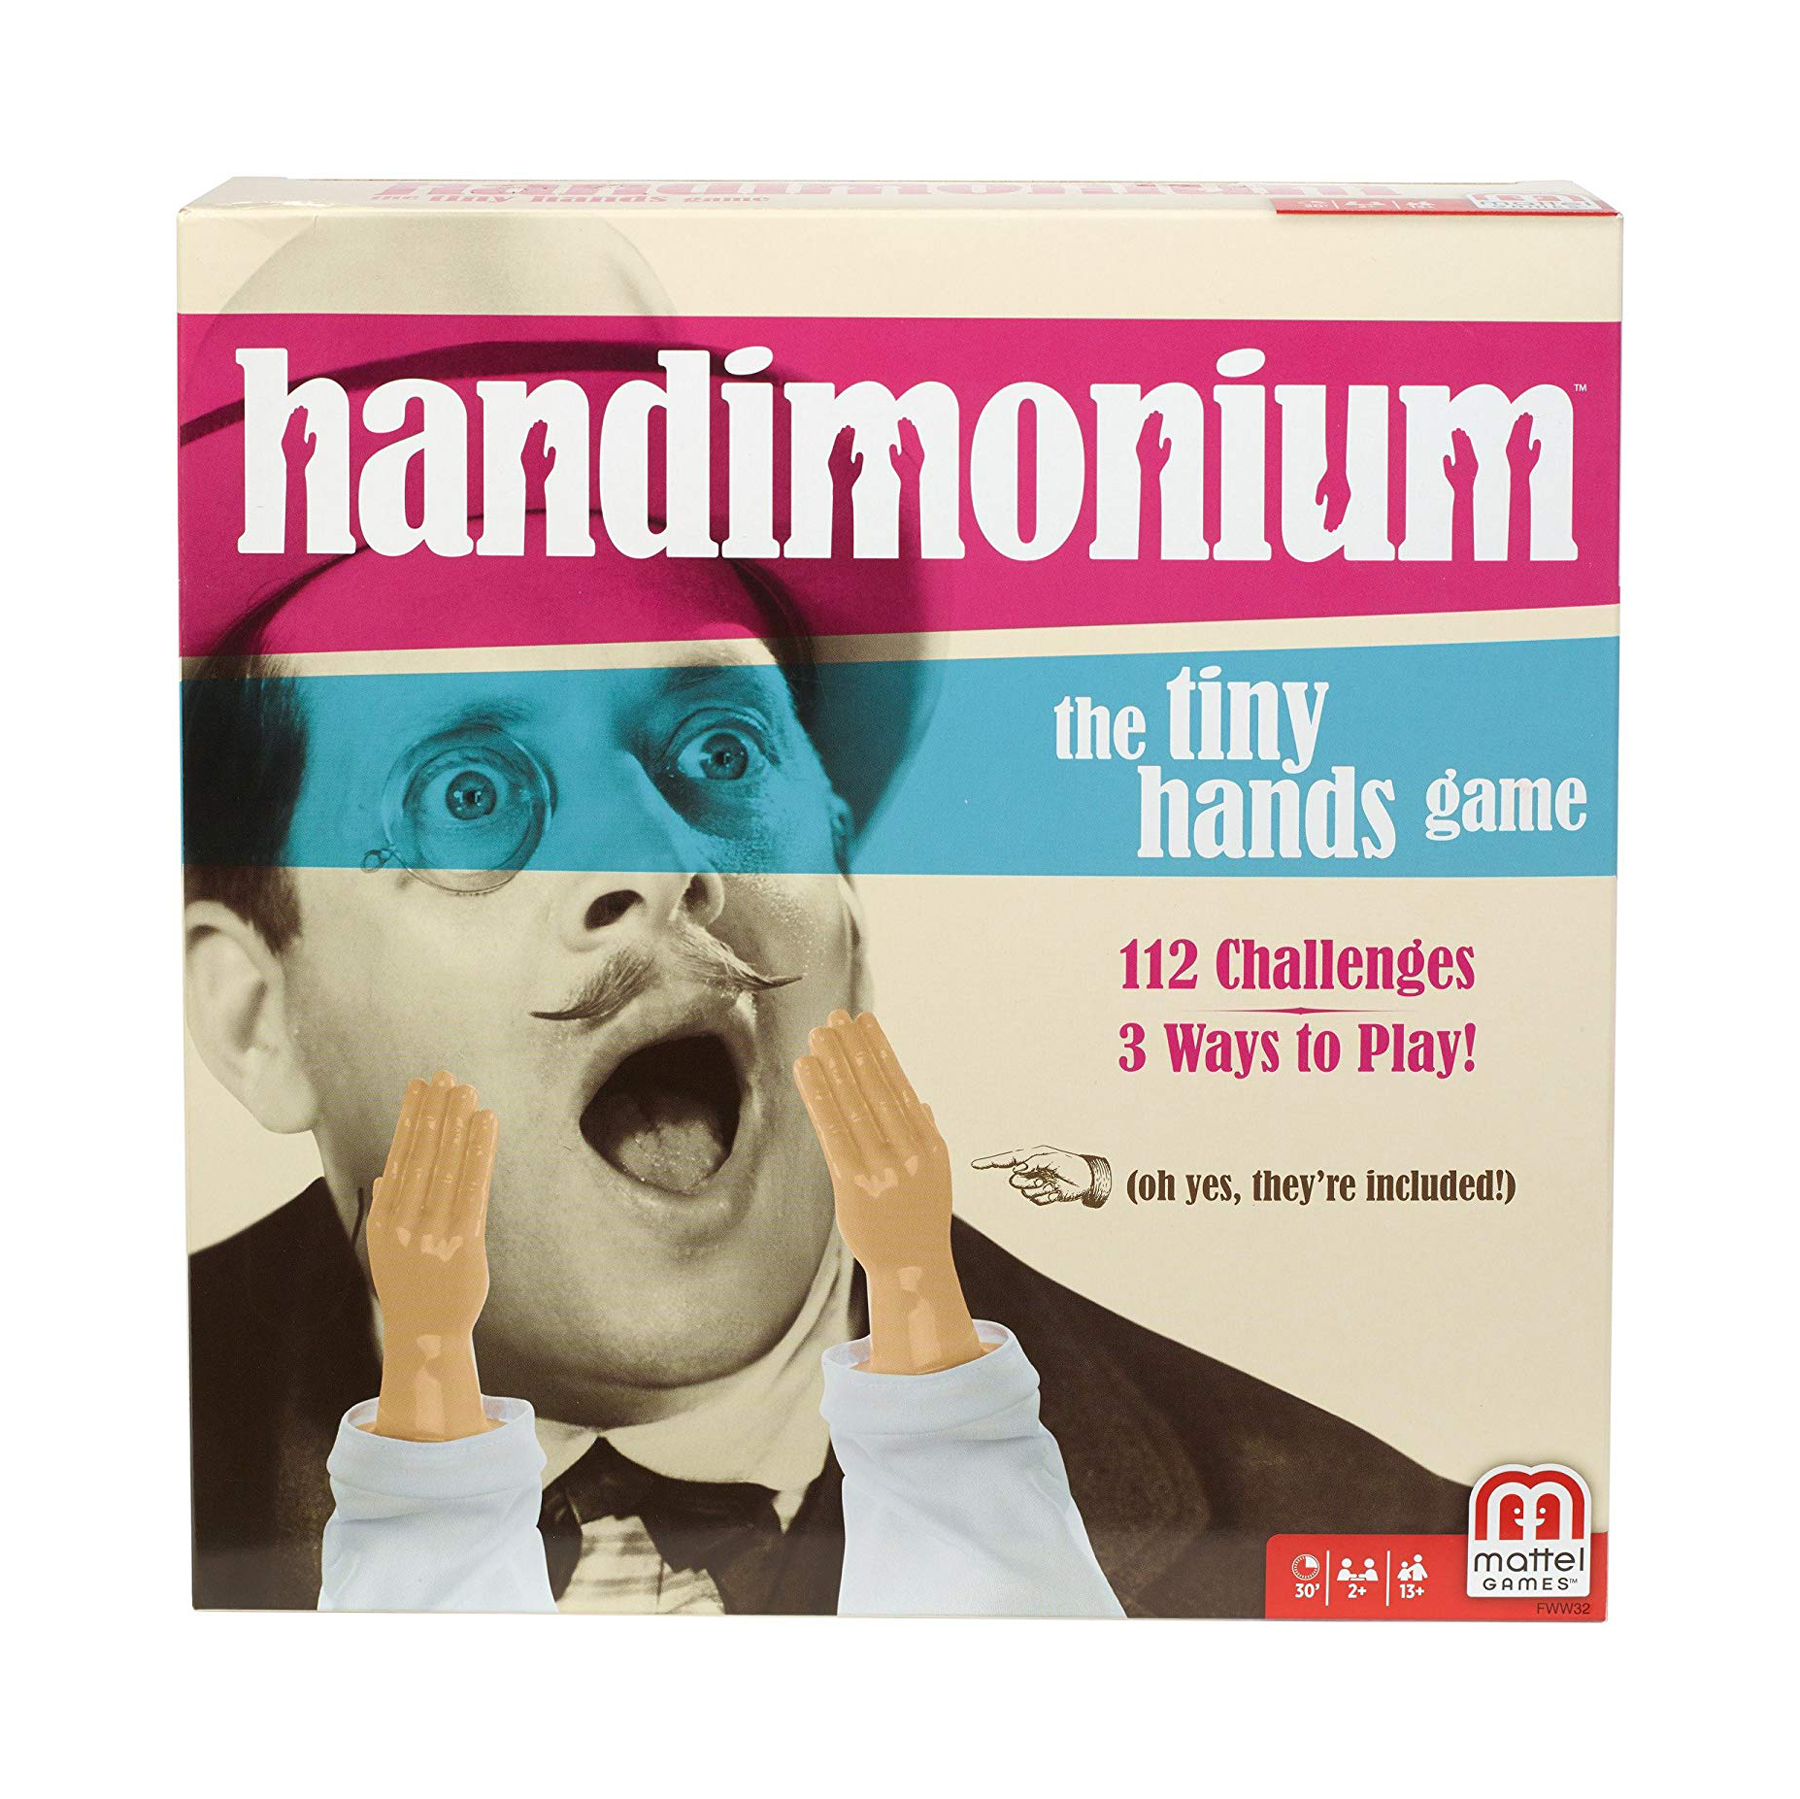 Funny gifts for men - Handimonium Game by Mattel Games